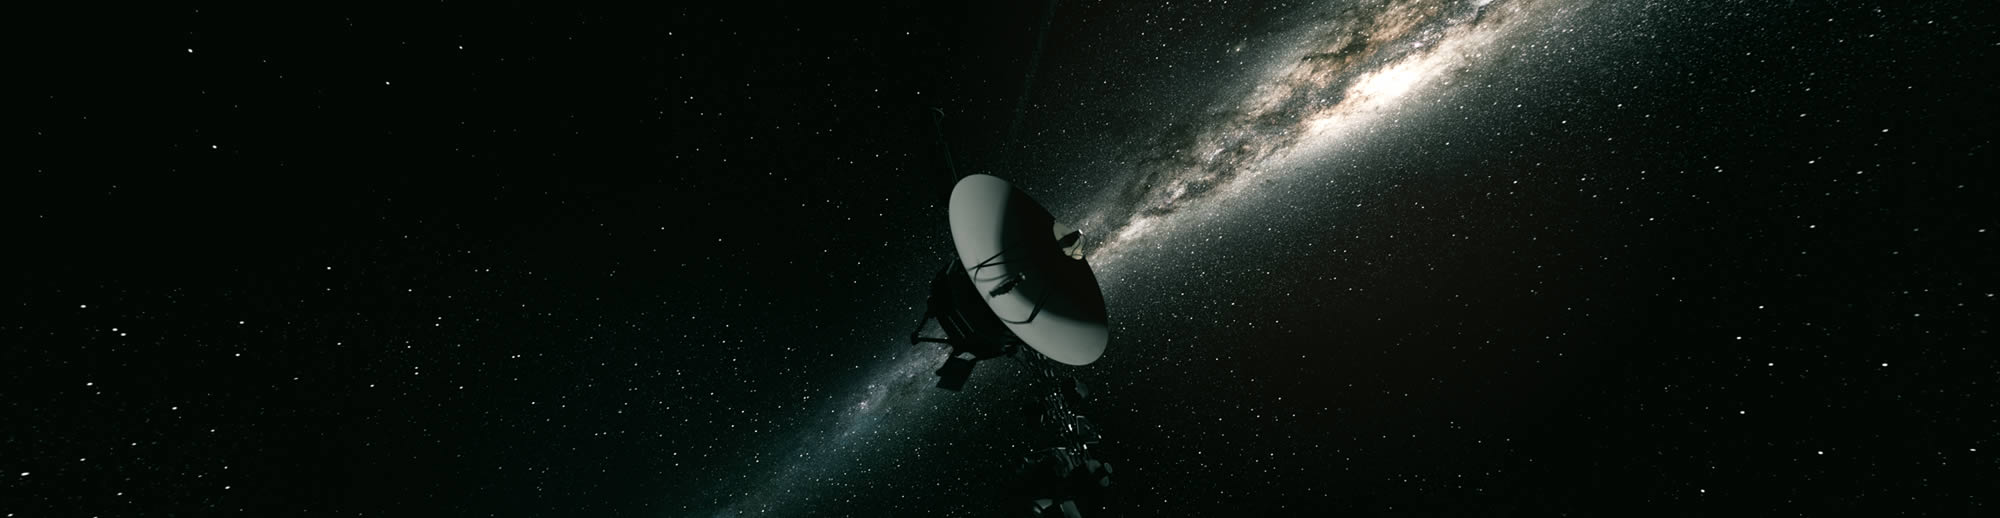 Artist rendering of Voyager flying in space with galaxy of stars in background